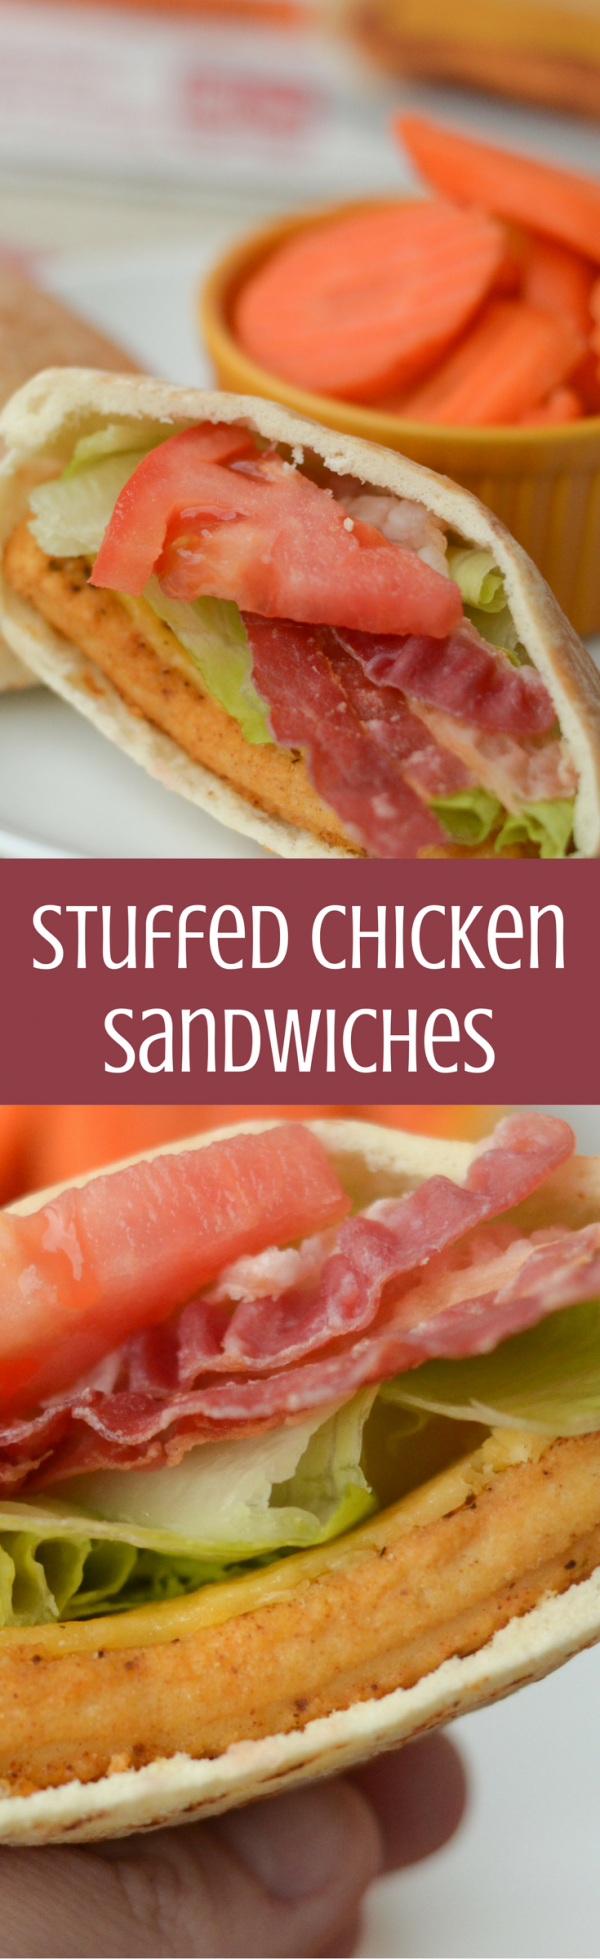 Stuffed Chicken Sandwiches